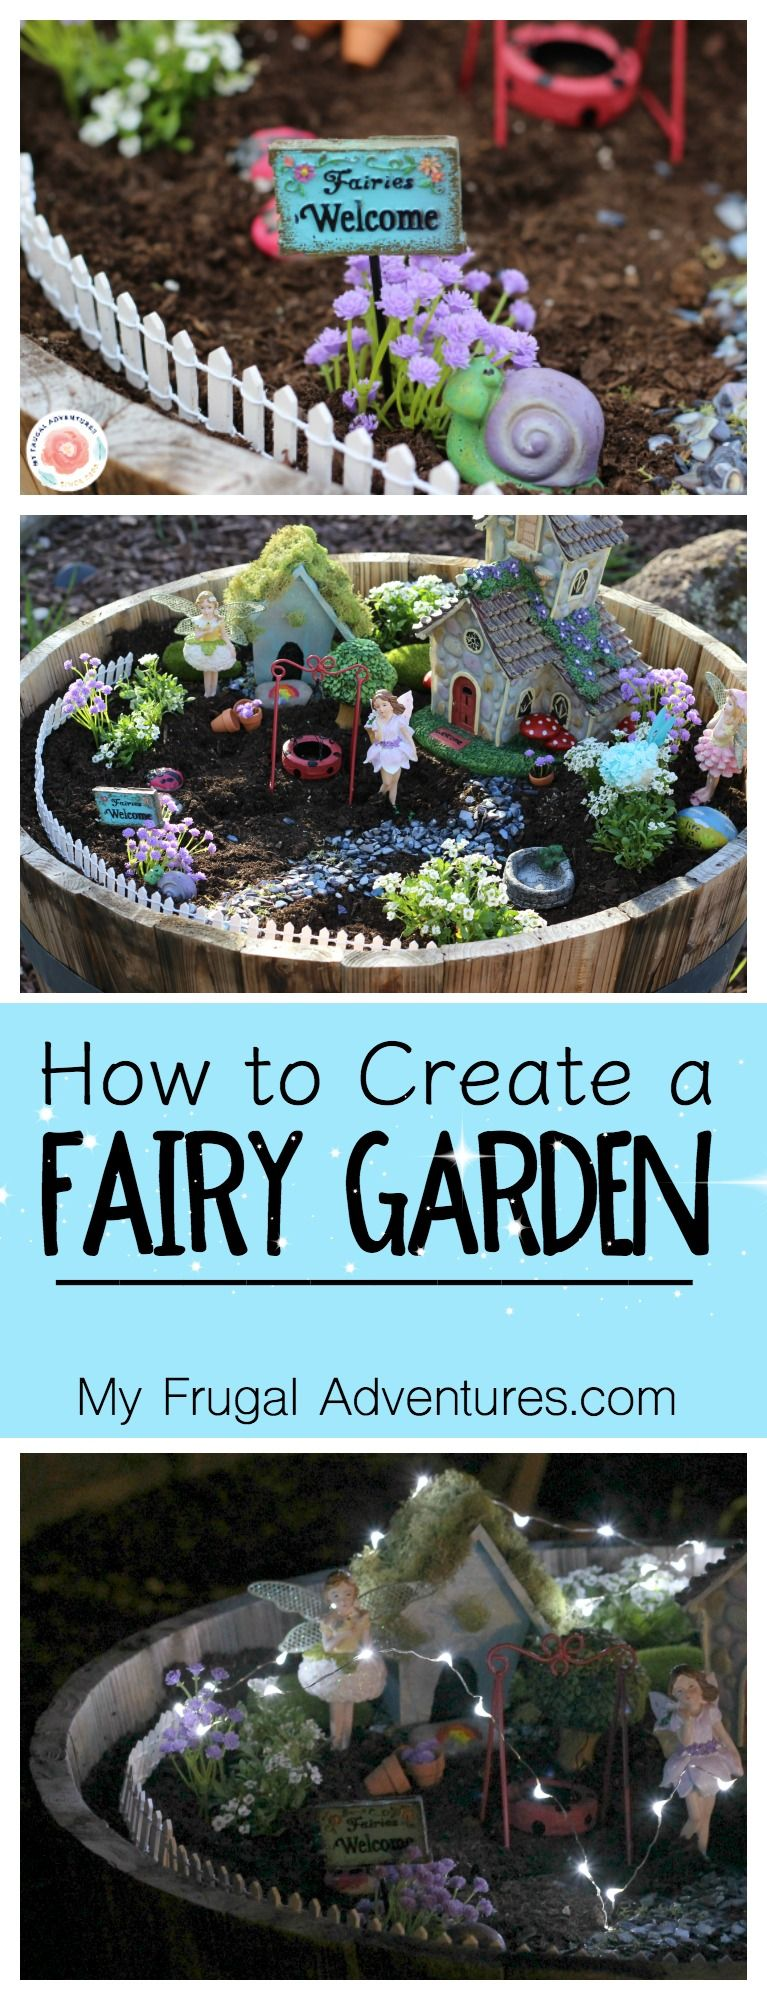 How to Make a Fairy Garden {for Indoor or Outdoor}